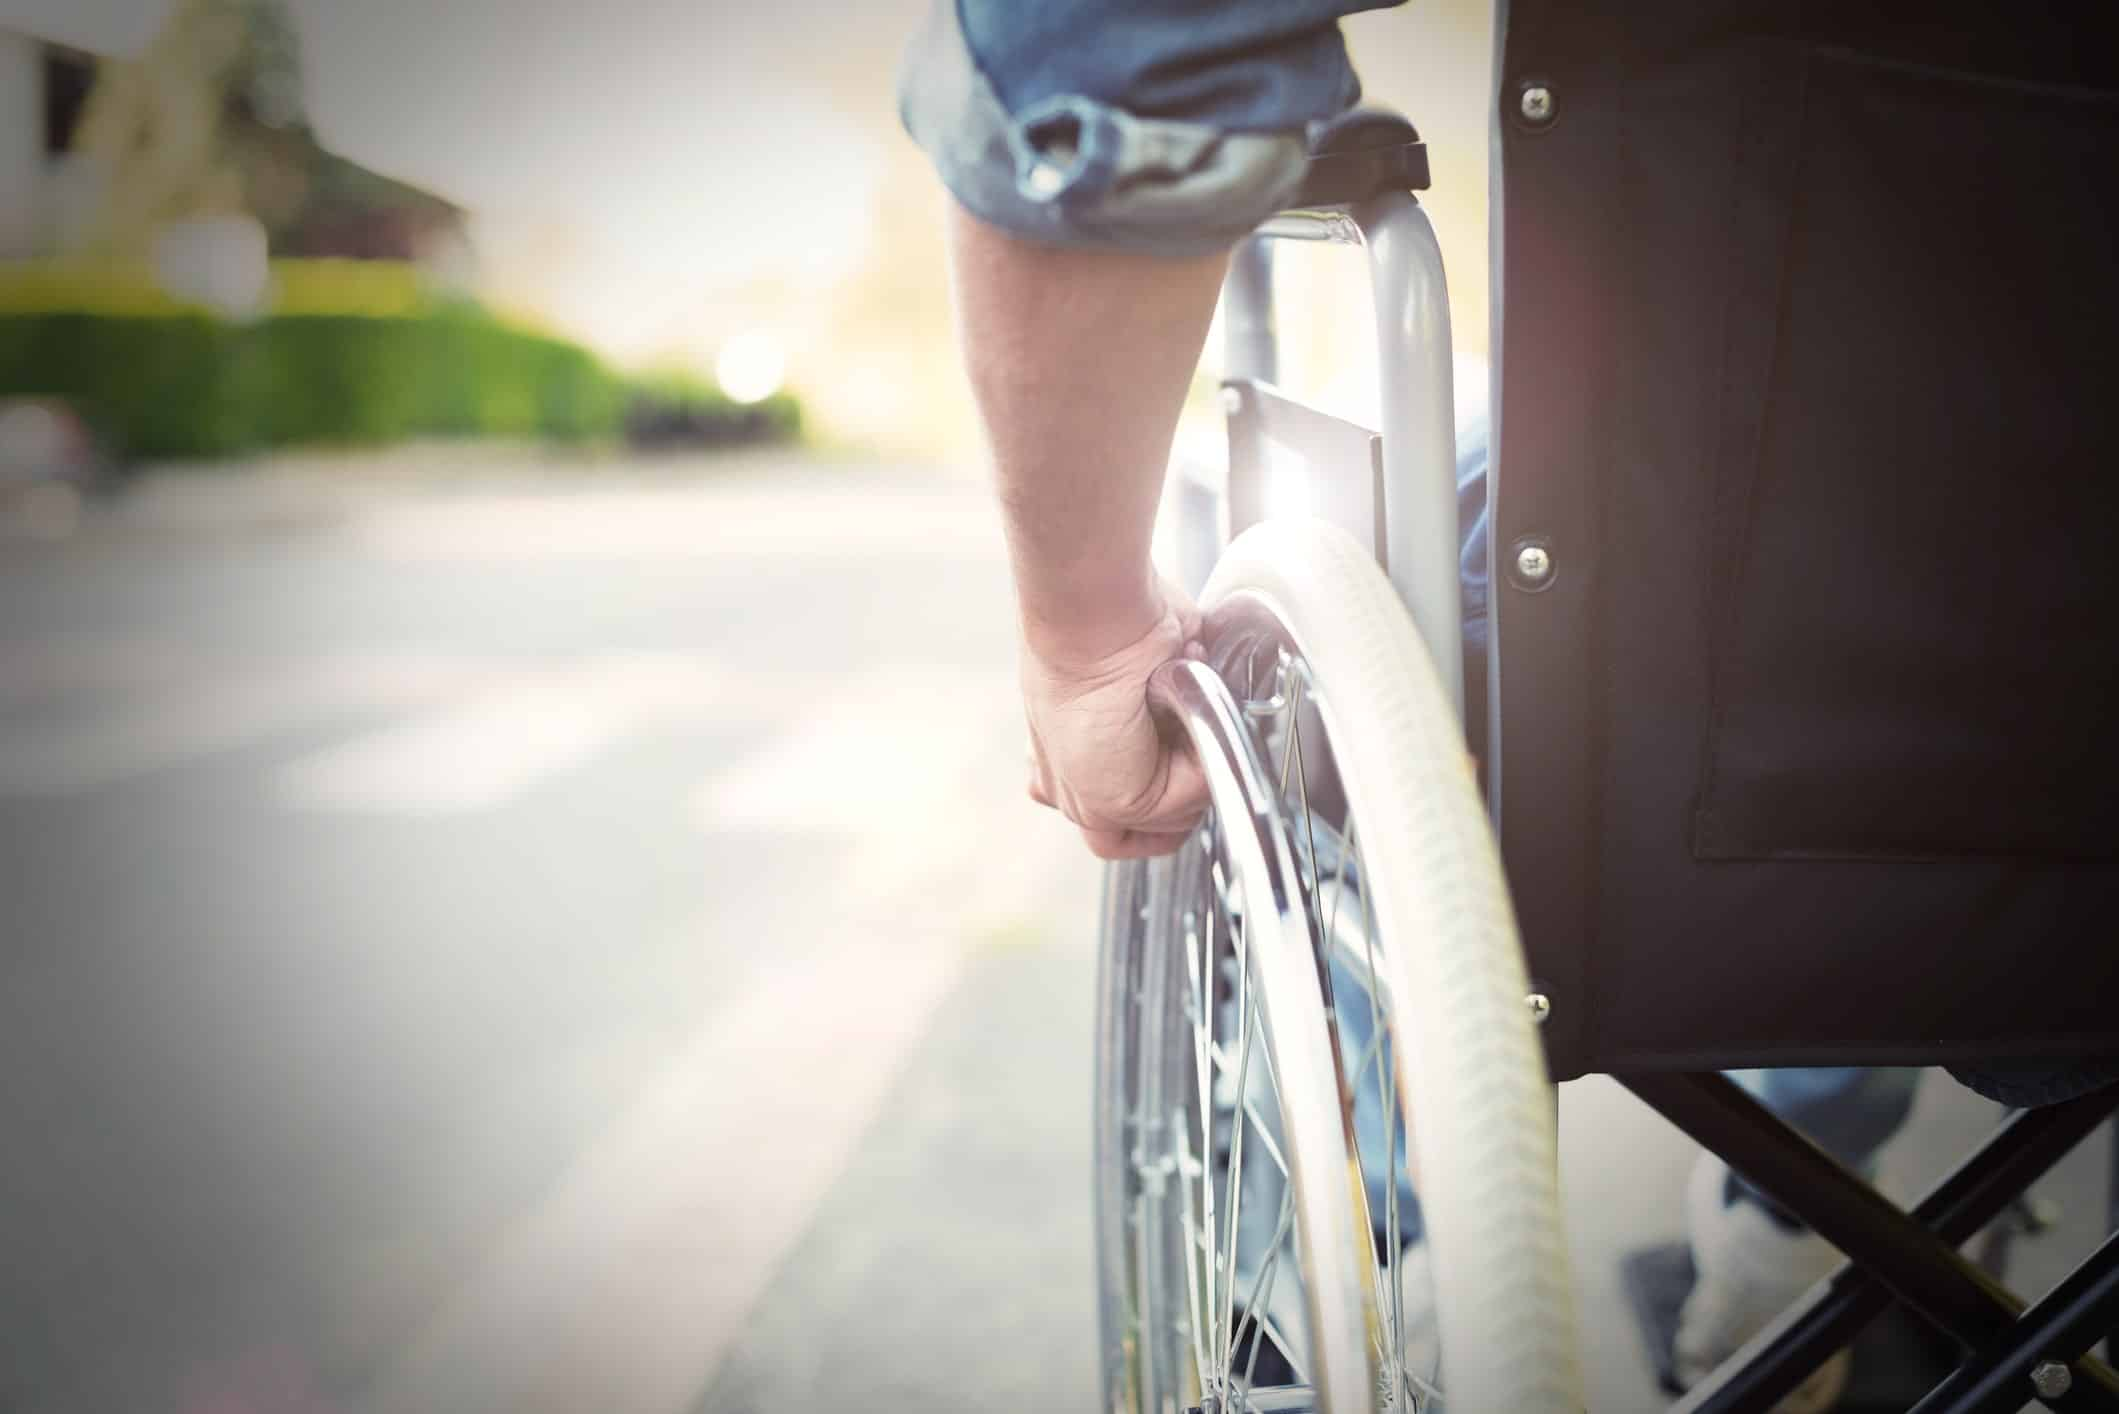 Medical Cannabis and Spinal Cord Injury